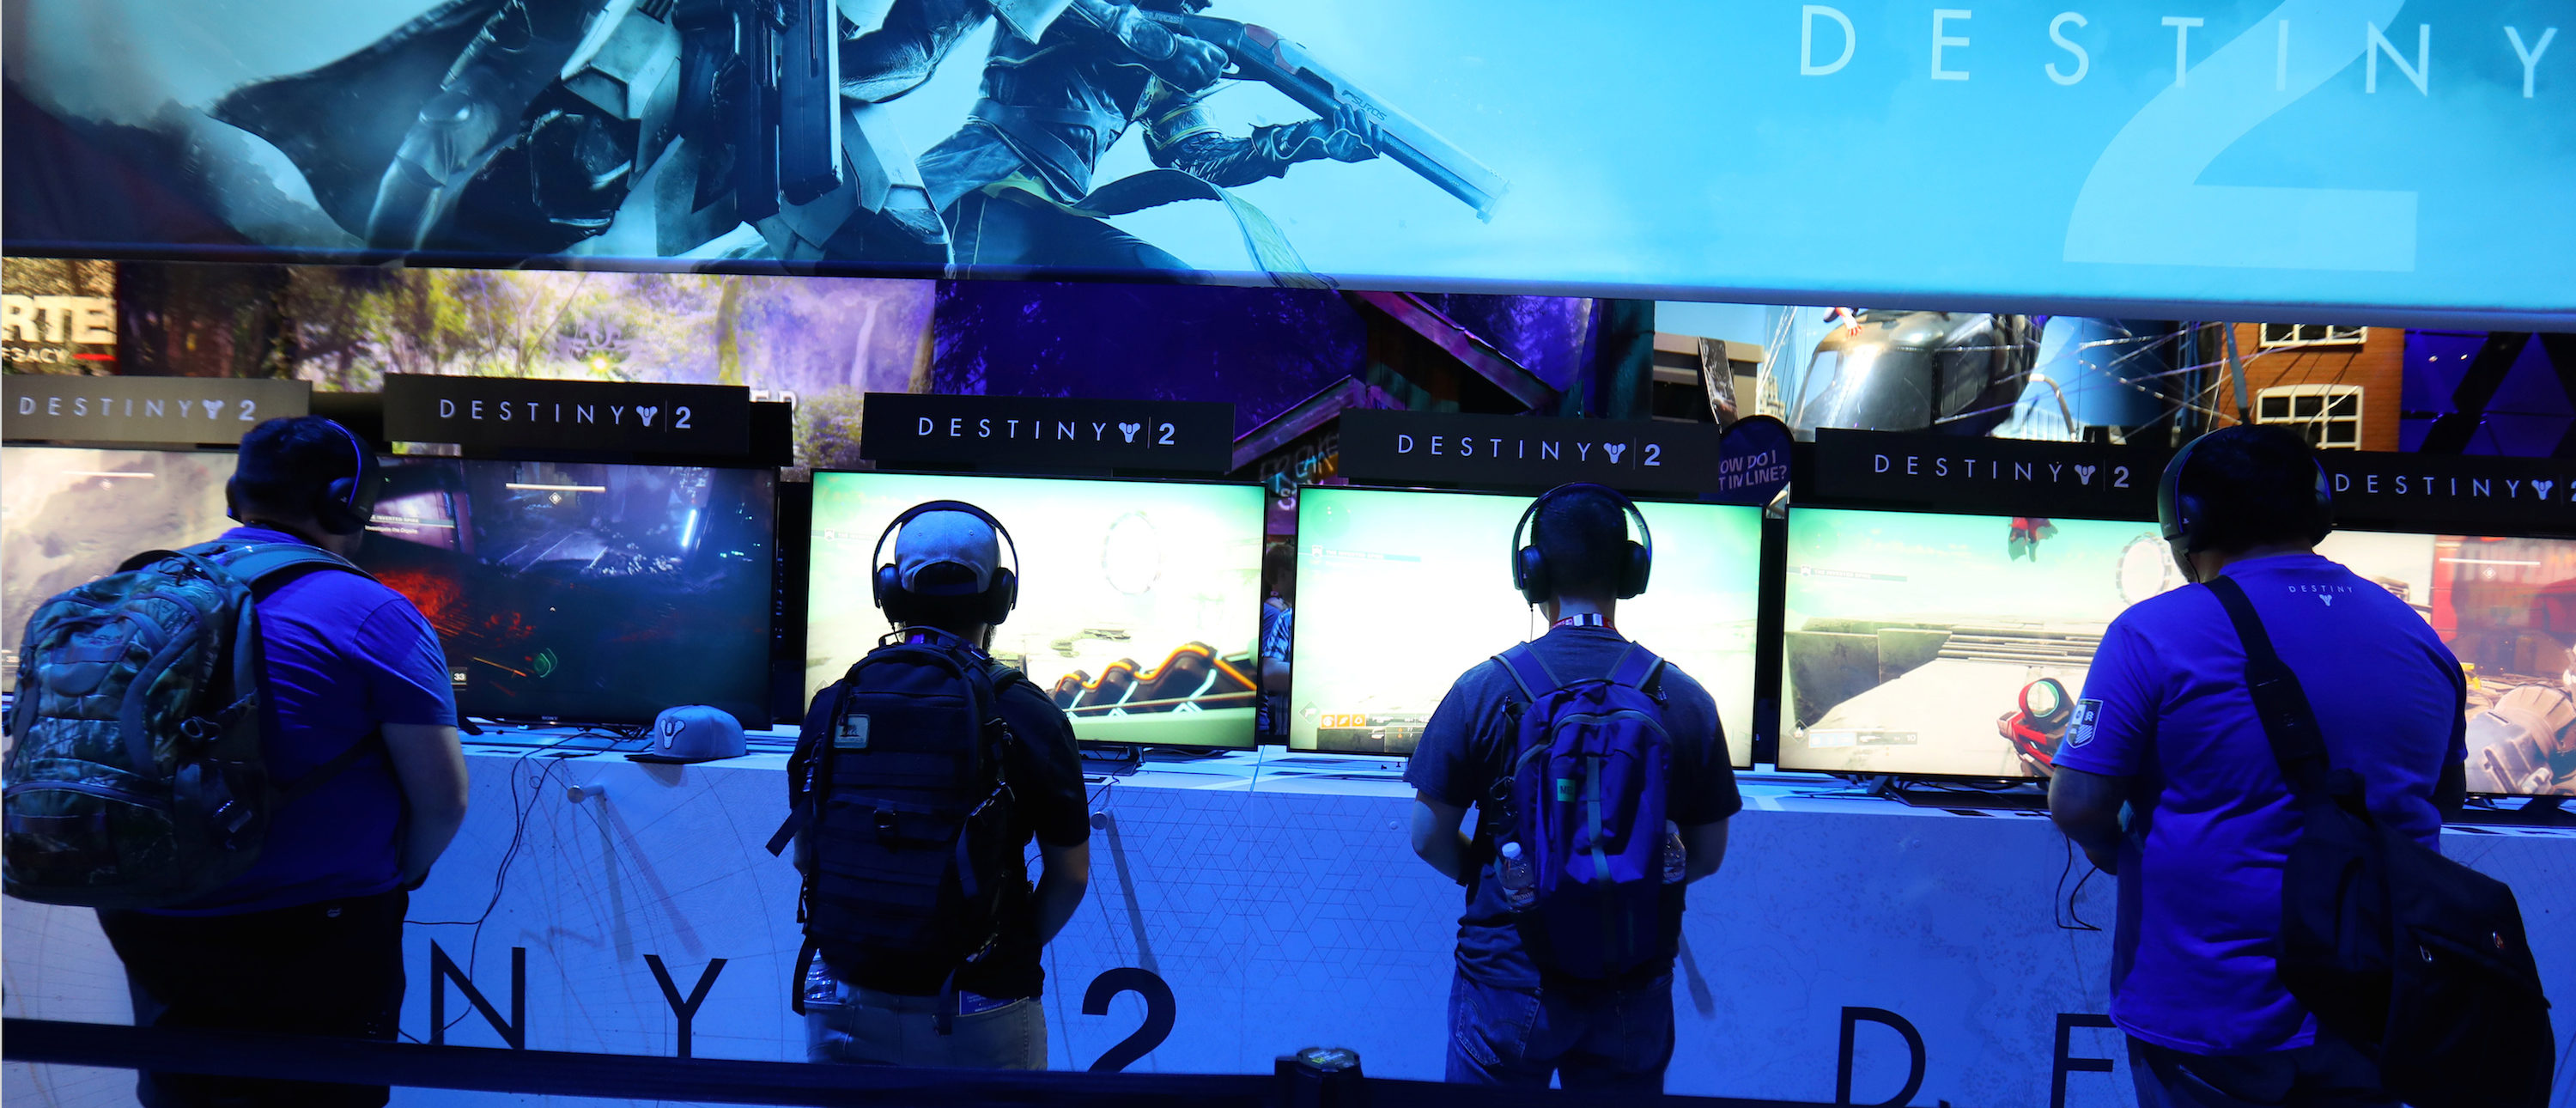 Attendees play video games at the E3 2017 Electronic Entertainment Expo in Los Angeles, June 13, 2017. REUTERS/ Mike Blake